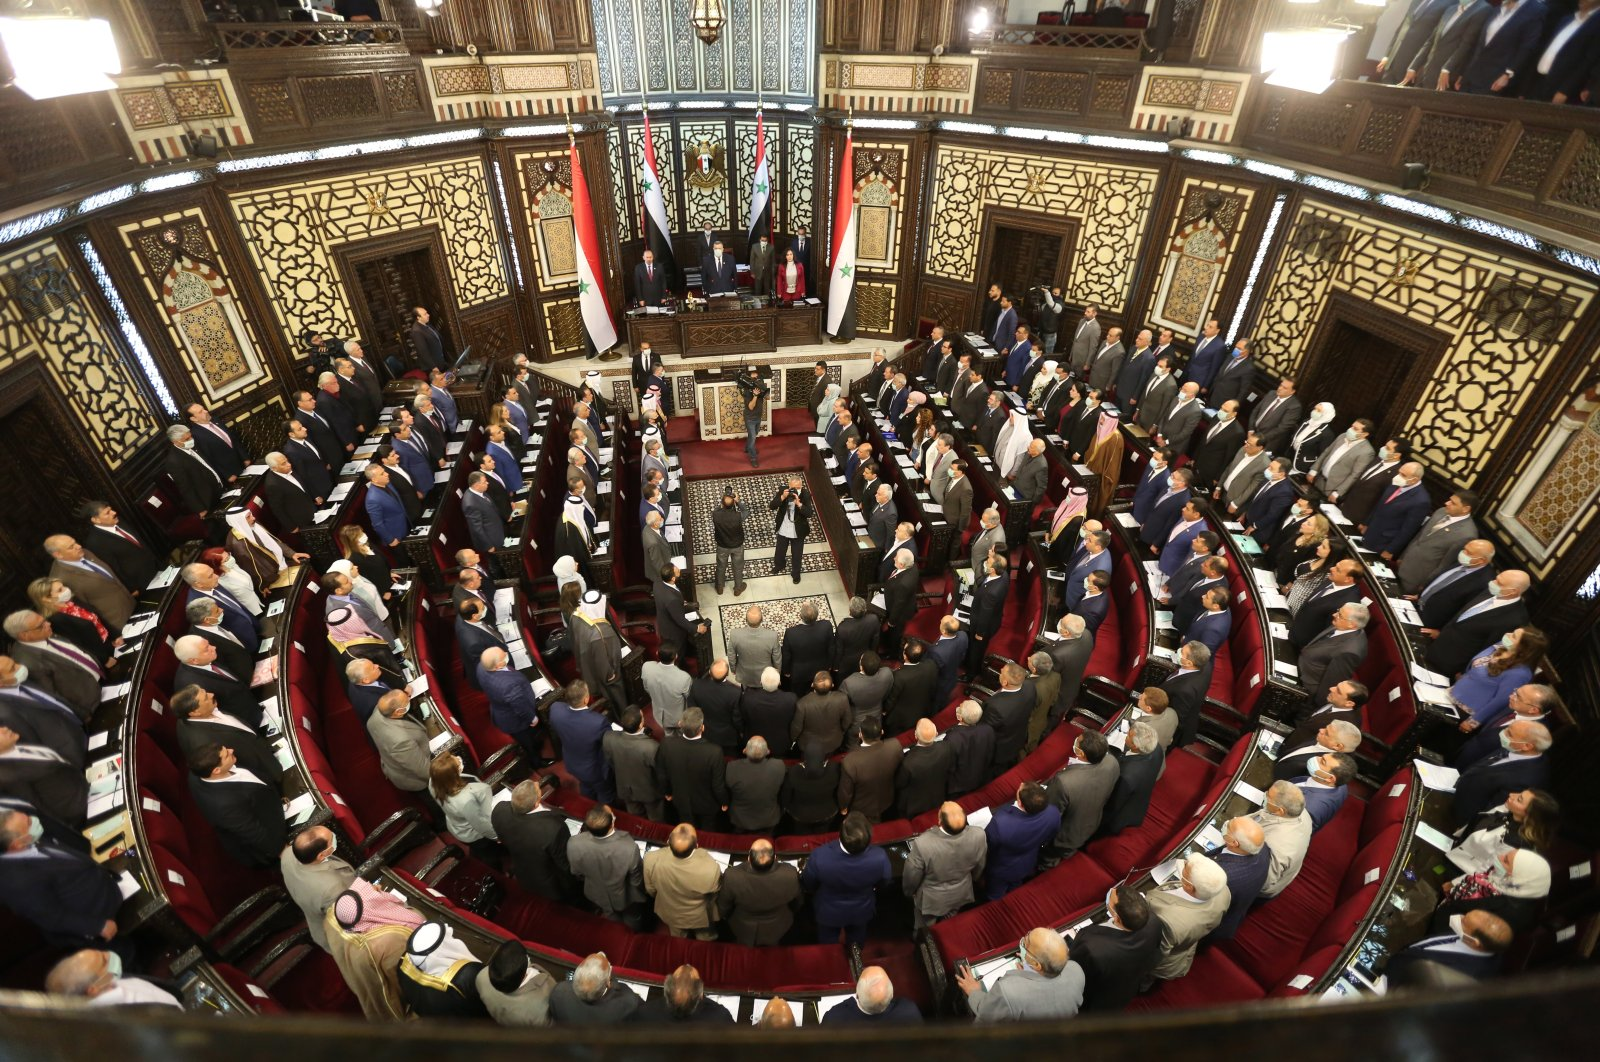 A general view of members of the Syrian parliament attending an extraordinary session in Damascus, Syria, April 18, 2021. (EPA Photo)